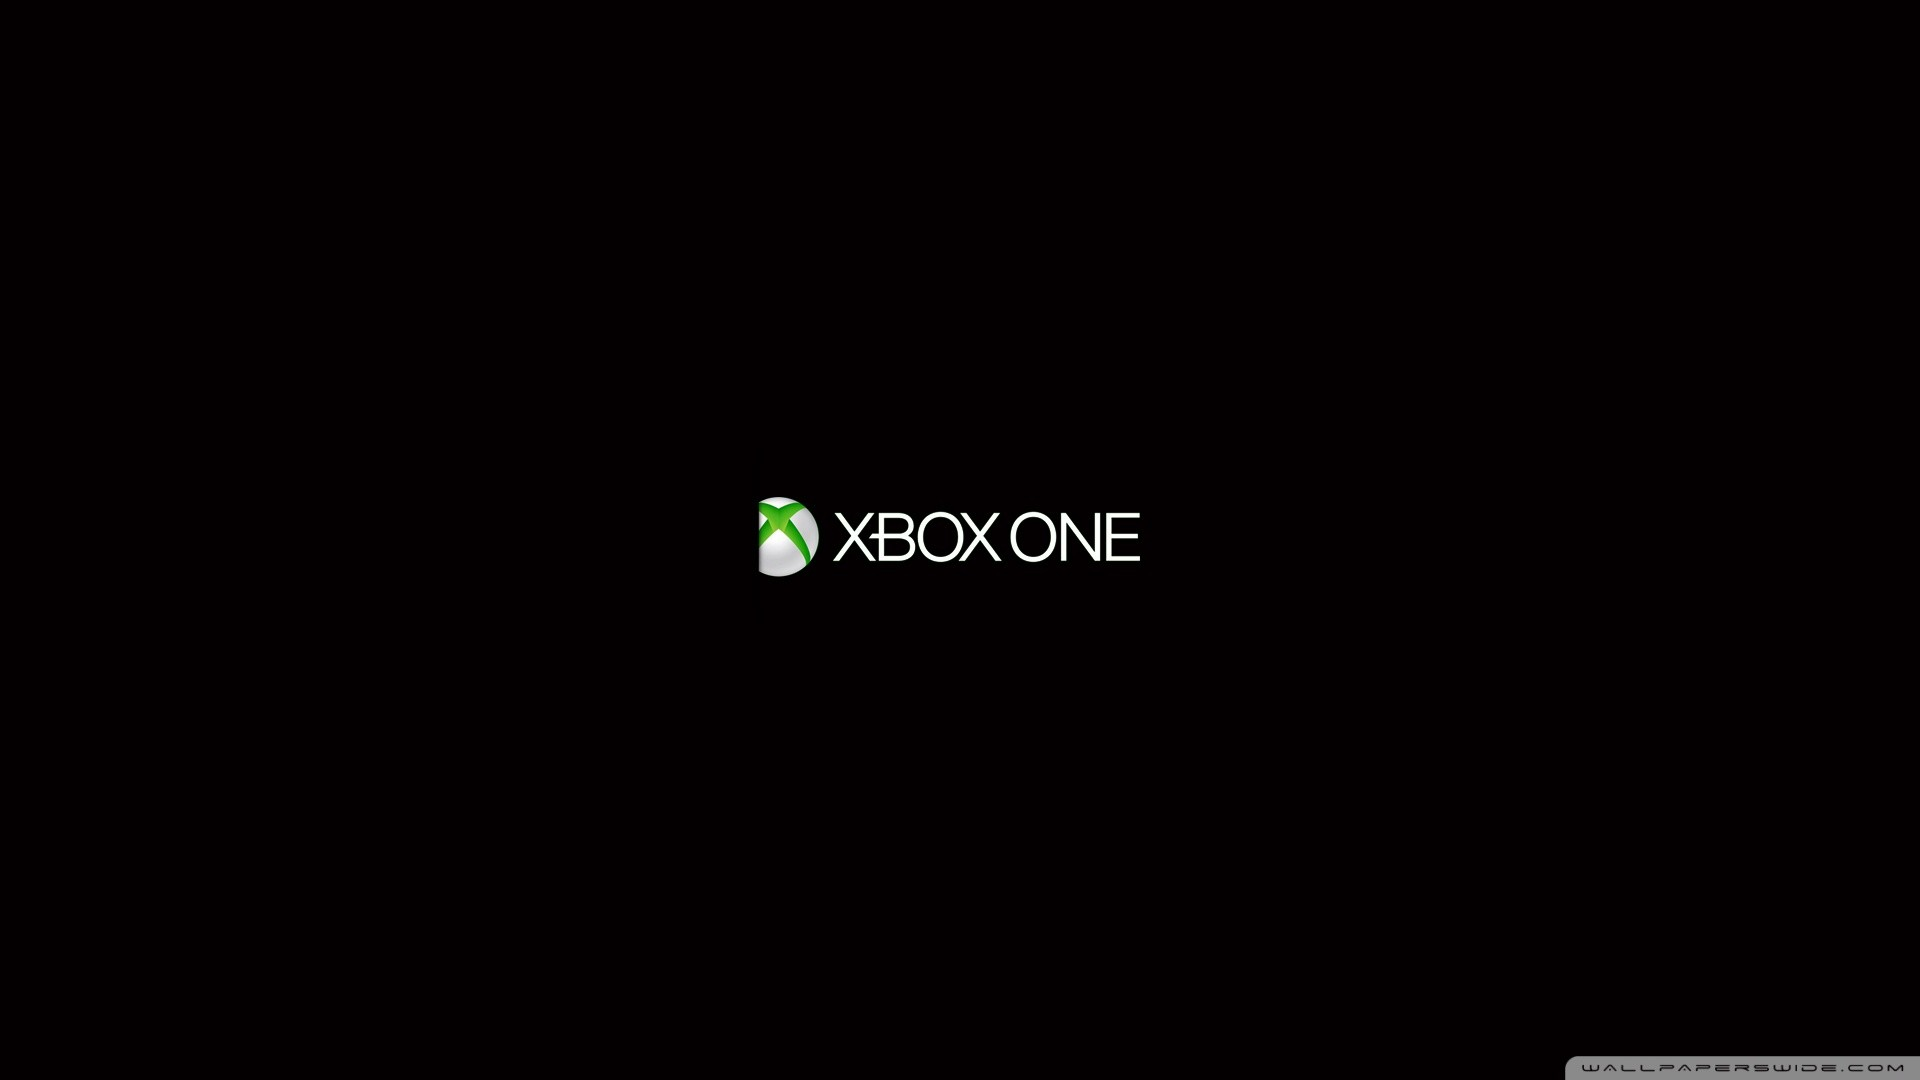 Cool Wallpapers for Xbox One (70+ images)